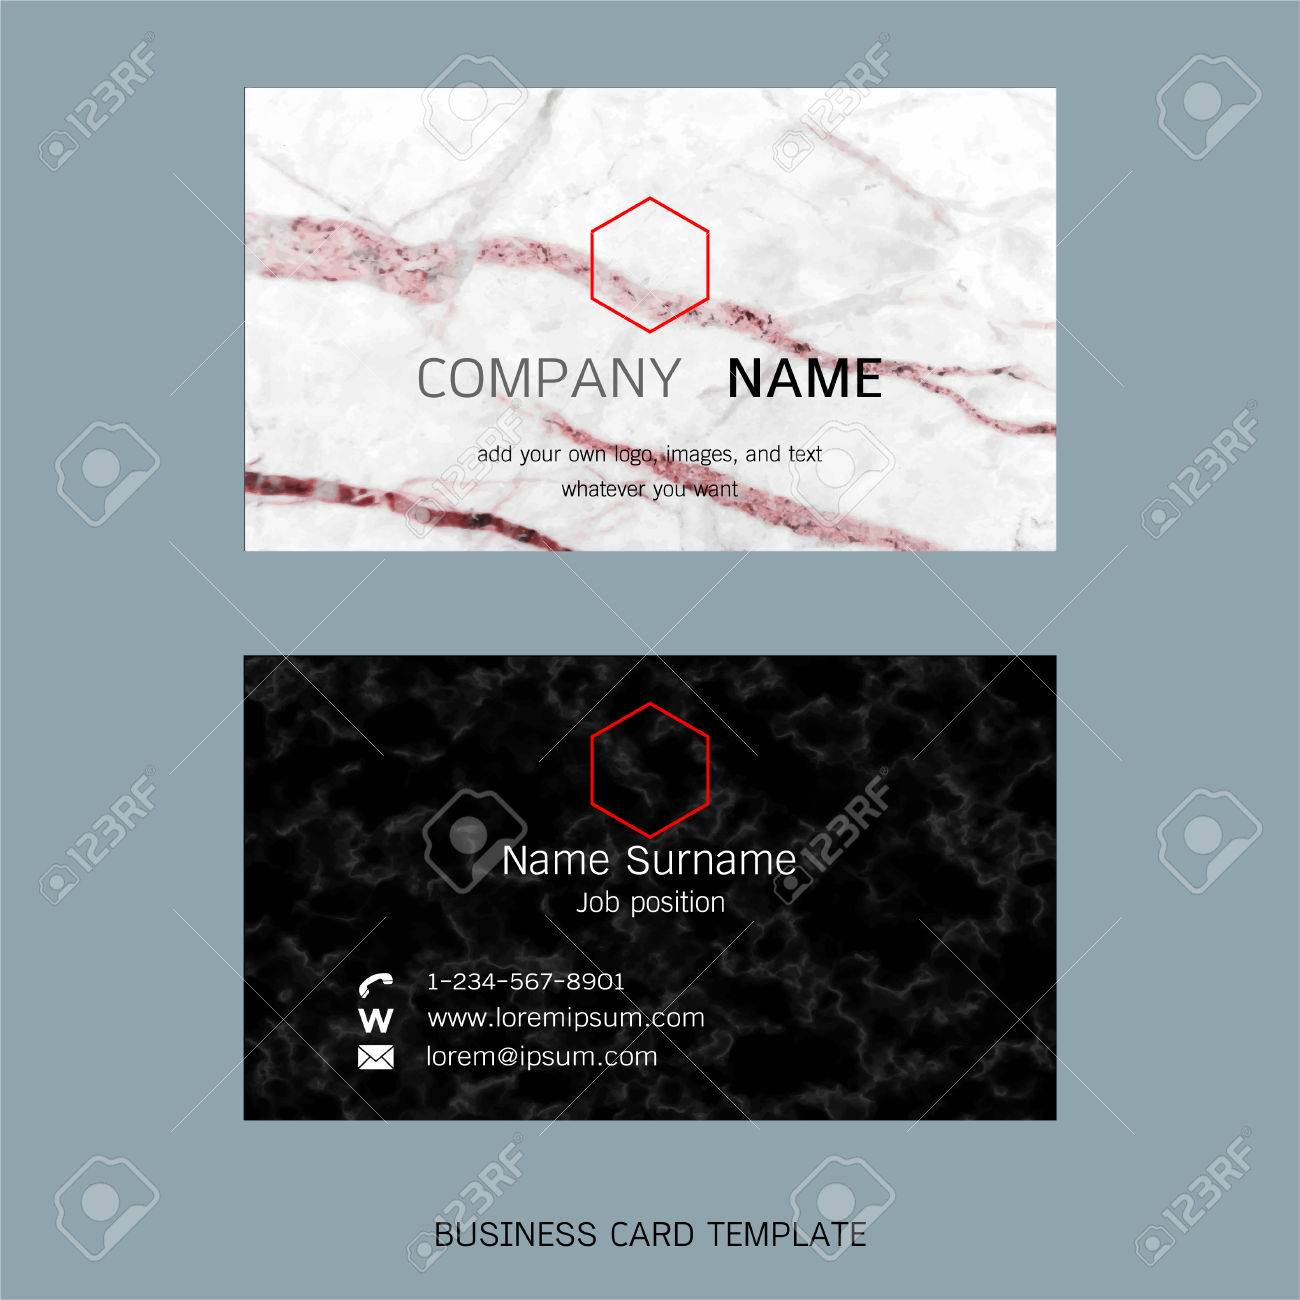 Modern designer business card layout templates marble texture modern designer business card layout templates marble texture background easy to use by print wajeb Gallery